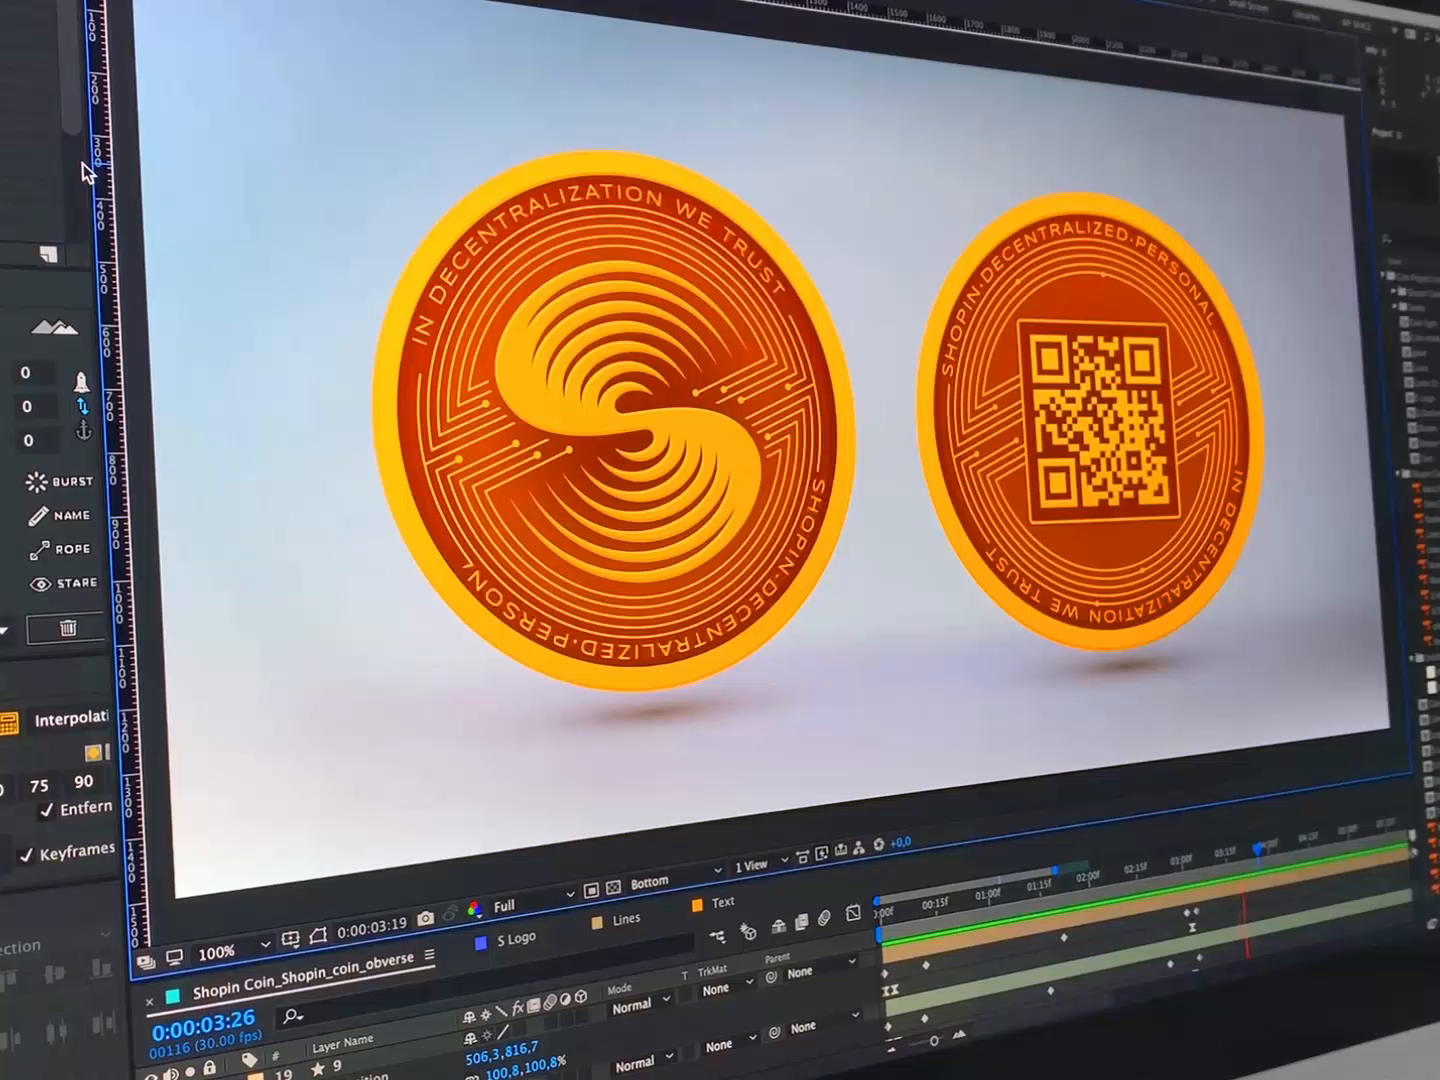 Shopin coin action in ae